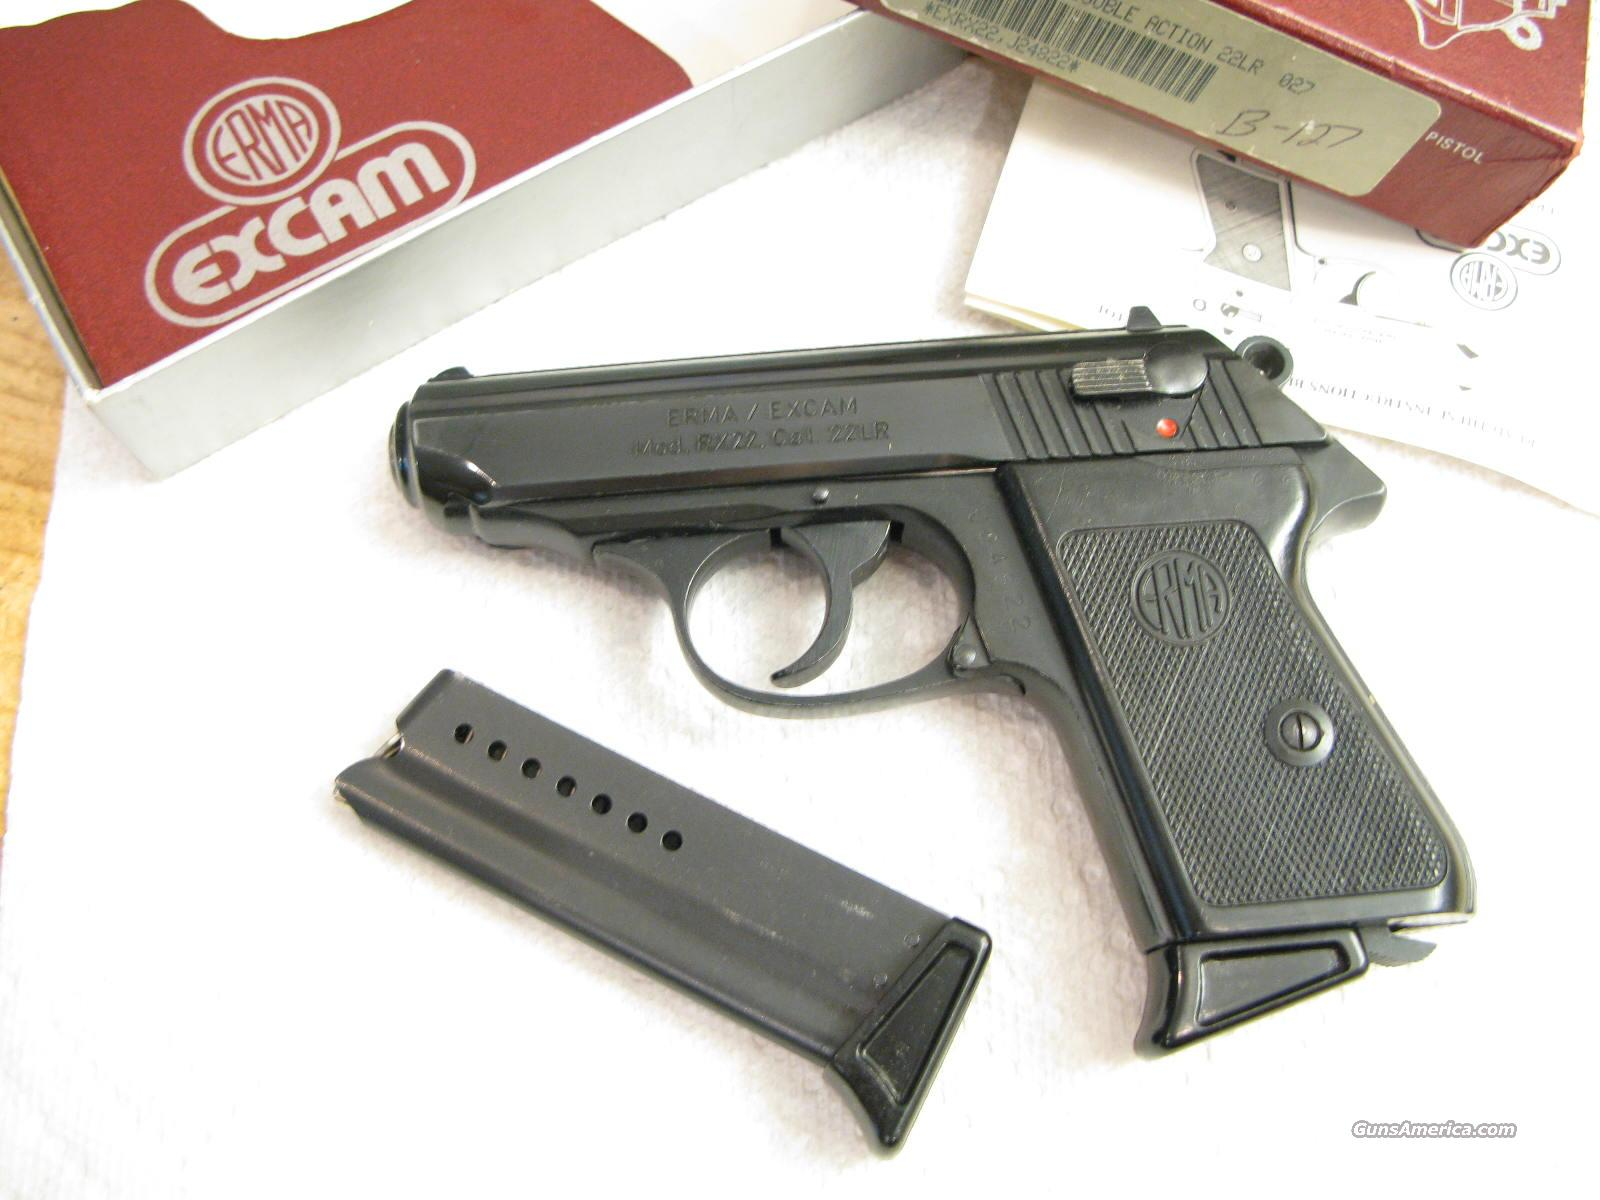 Erma RX-22 .22 LR Like PPK in Box 2 Clips  Guns > Pistols > Walther Pistols > Post WWII > PP Series